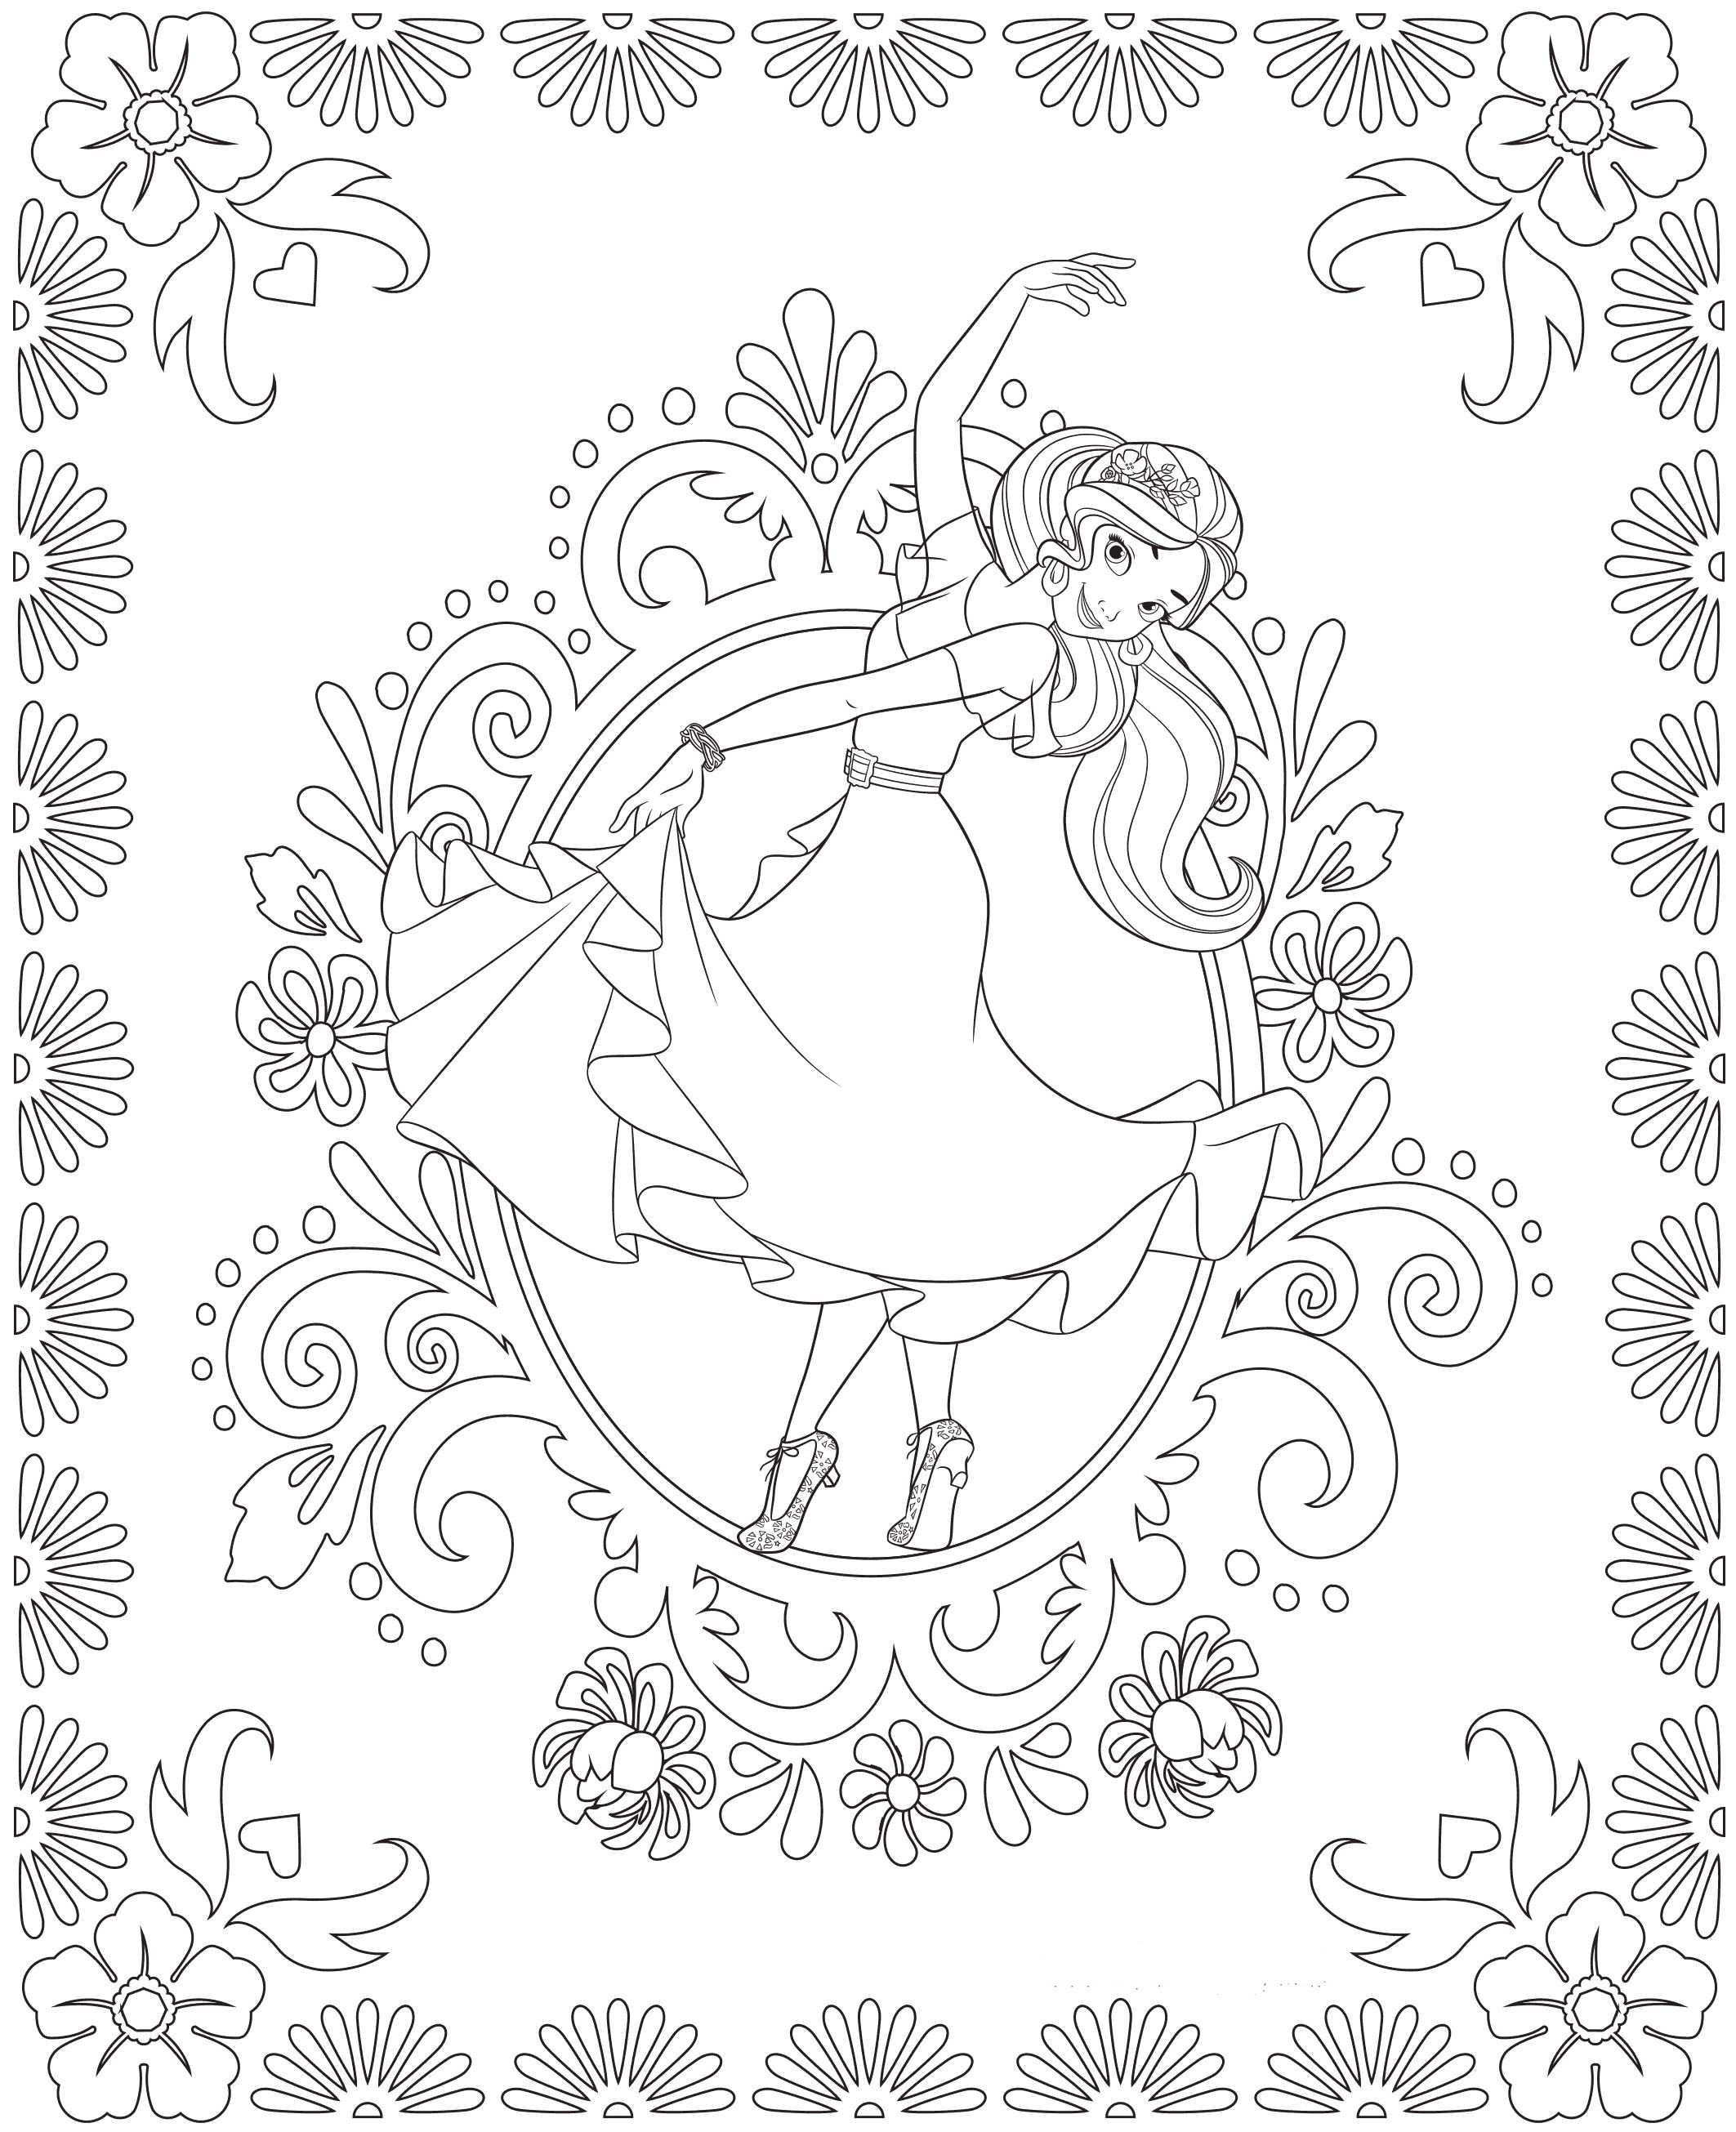 image relating to Elena of Avalor Coloring Pages Printable identified as Elena of Avalor Coloring Internet pages - Perfect Coloring Web pages For Little ones